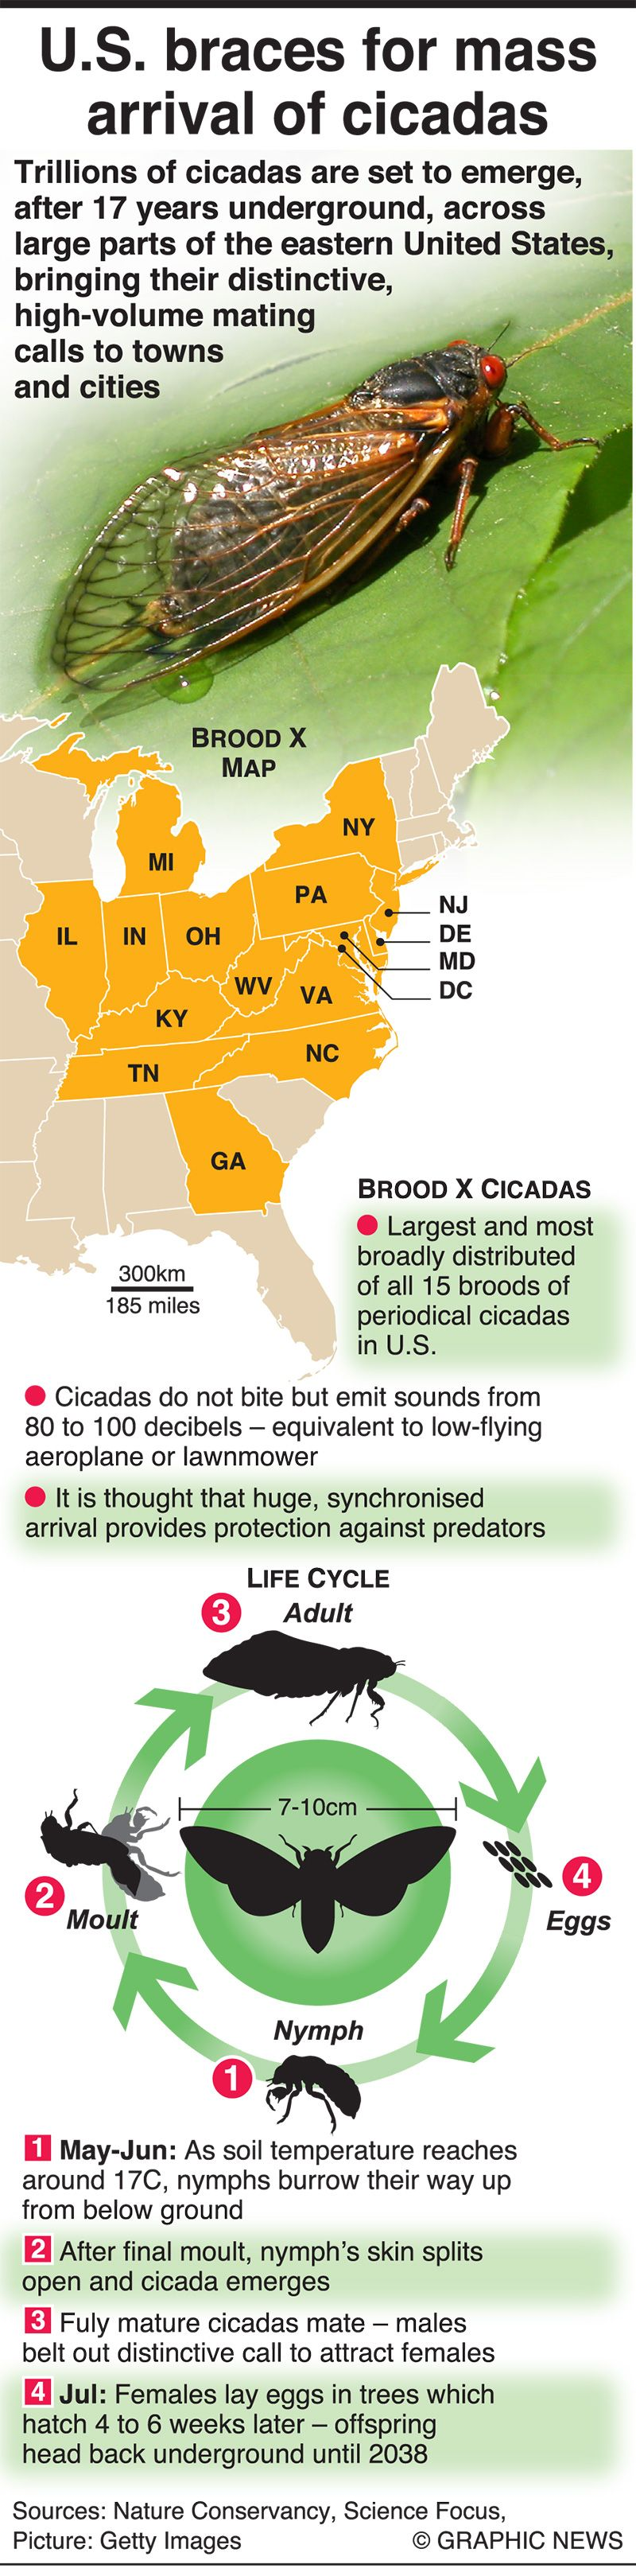 Infographic: US braces for mass arrival of cicadas